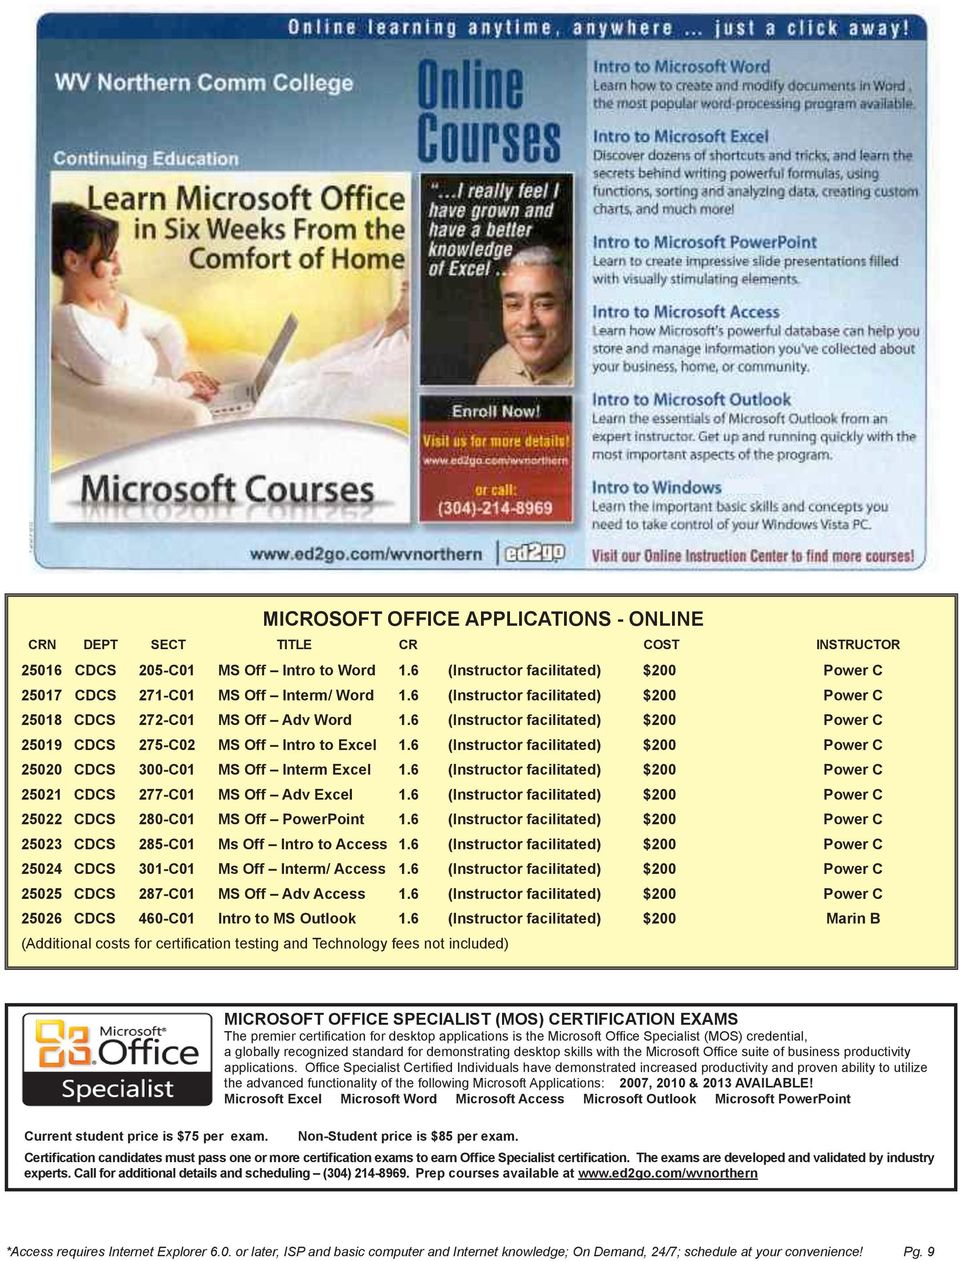 6 (Instructor facilitated) $200 Power C 25019 CDCS 275-C02 MS Off Intro to Excel 1.6 (Instructor facilitated) $200 Power C 25020 CDCS 300-C01 MS Off Interm Excel 1.